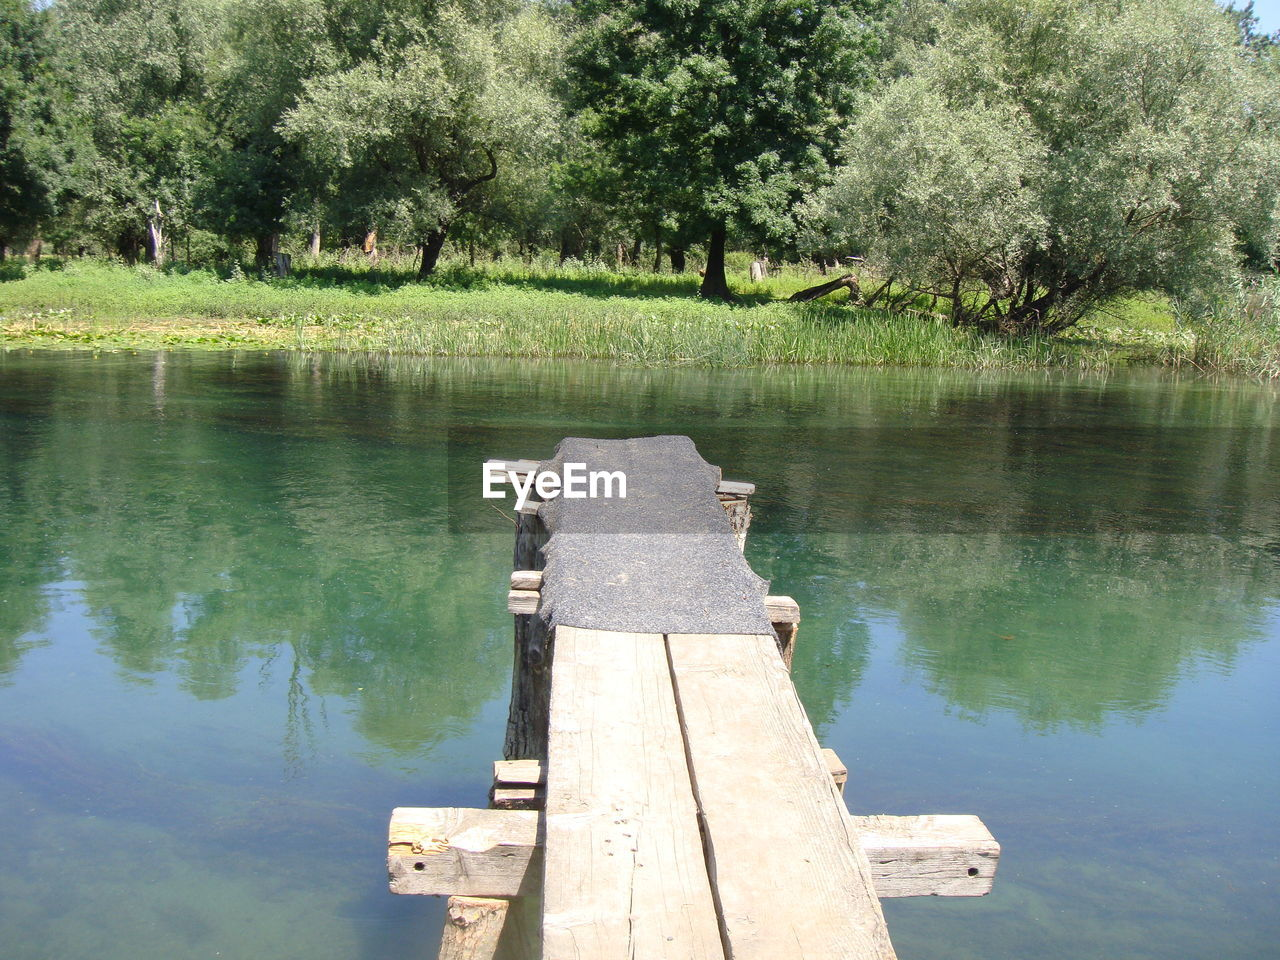 tree, nature, reflection, no people, outdoors, water, day, wood - material, beauty in nature, lake, tranquility, scenics